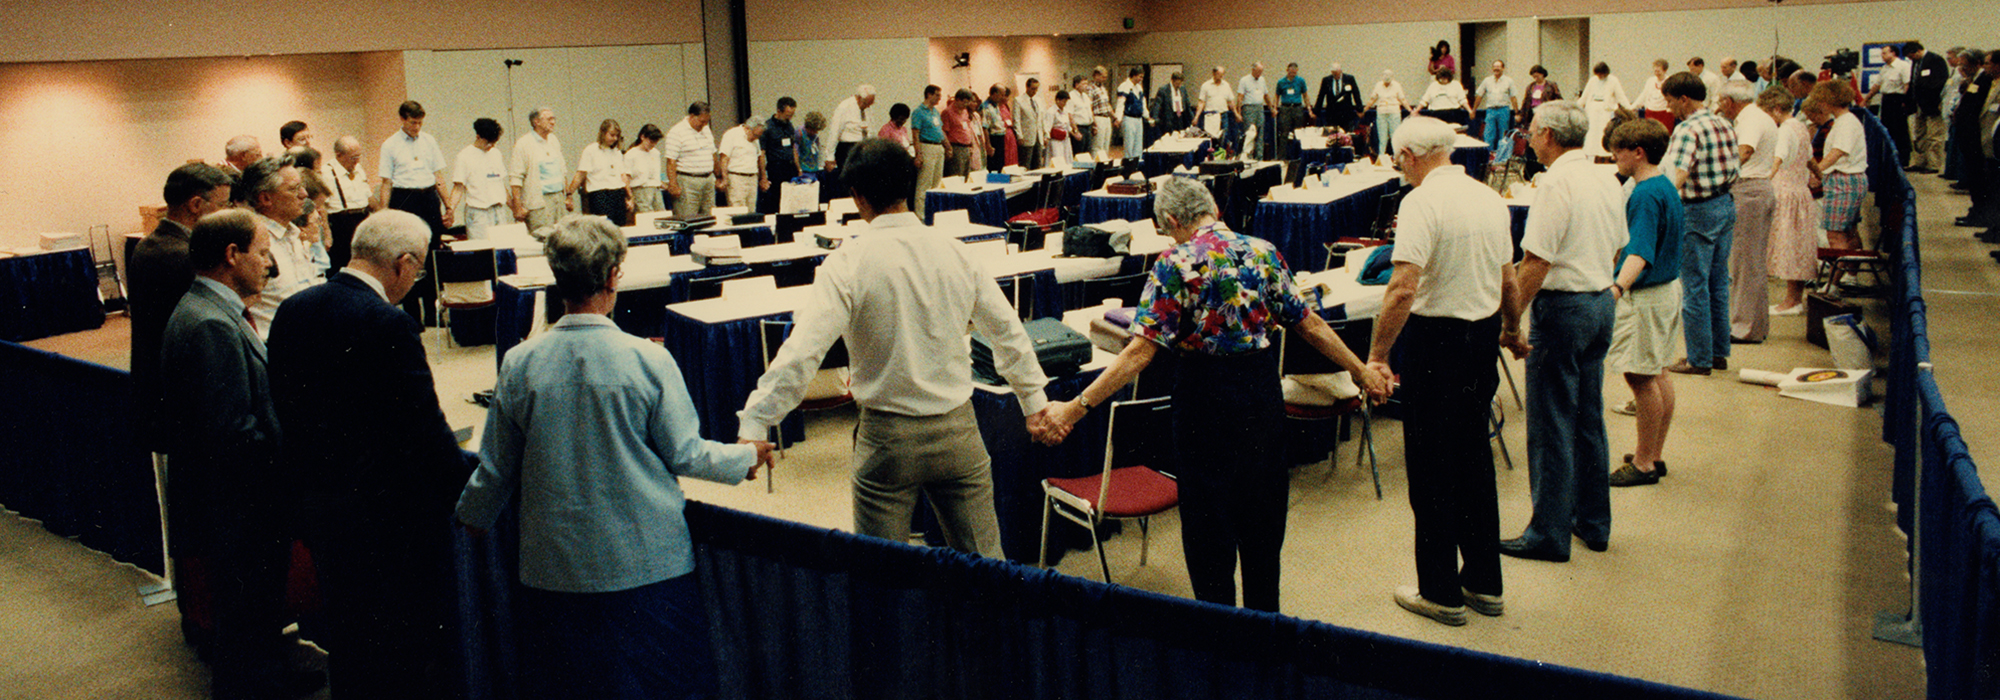 """Human Sexuality Committee at the 203rd General Assembly, Baltimore, Maryland, 1991. Via PHS Pearl online archives."""